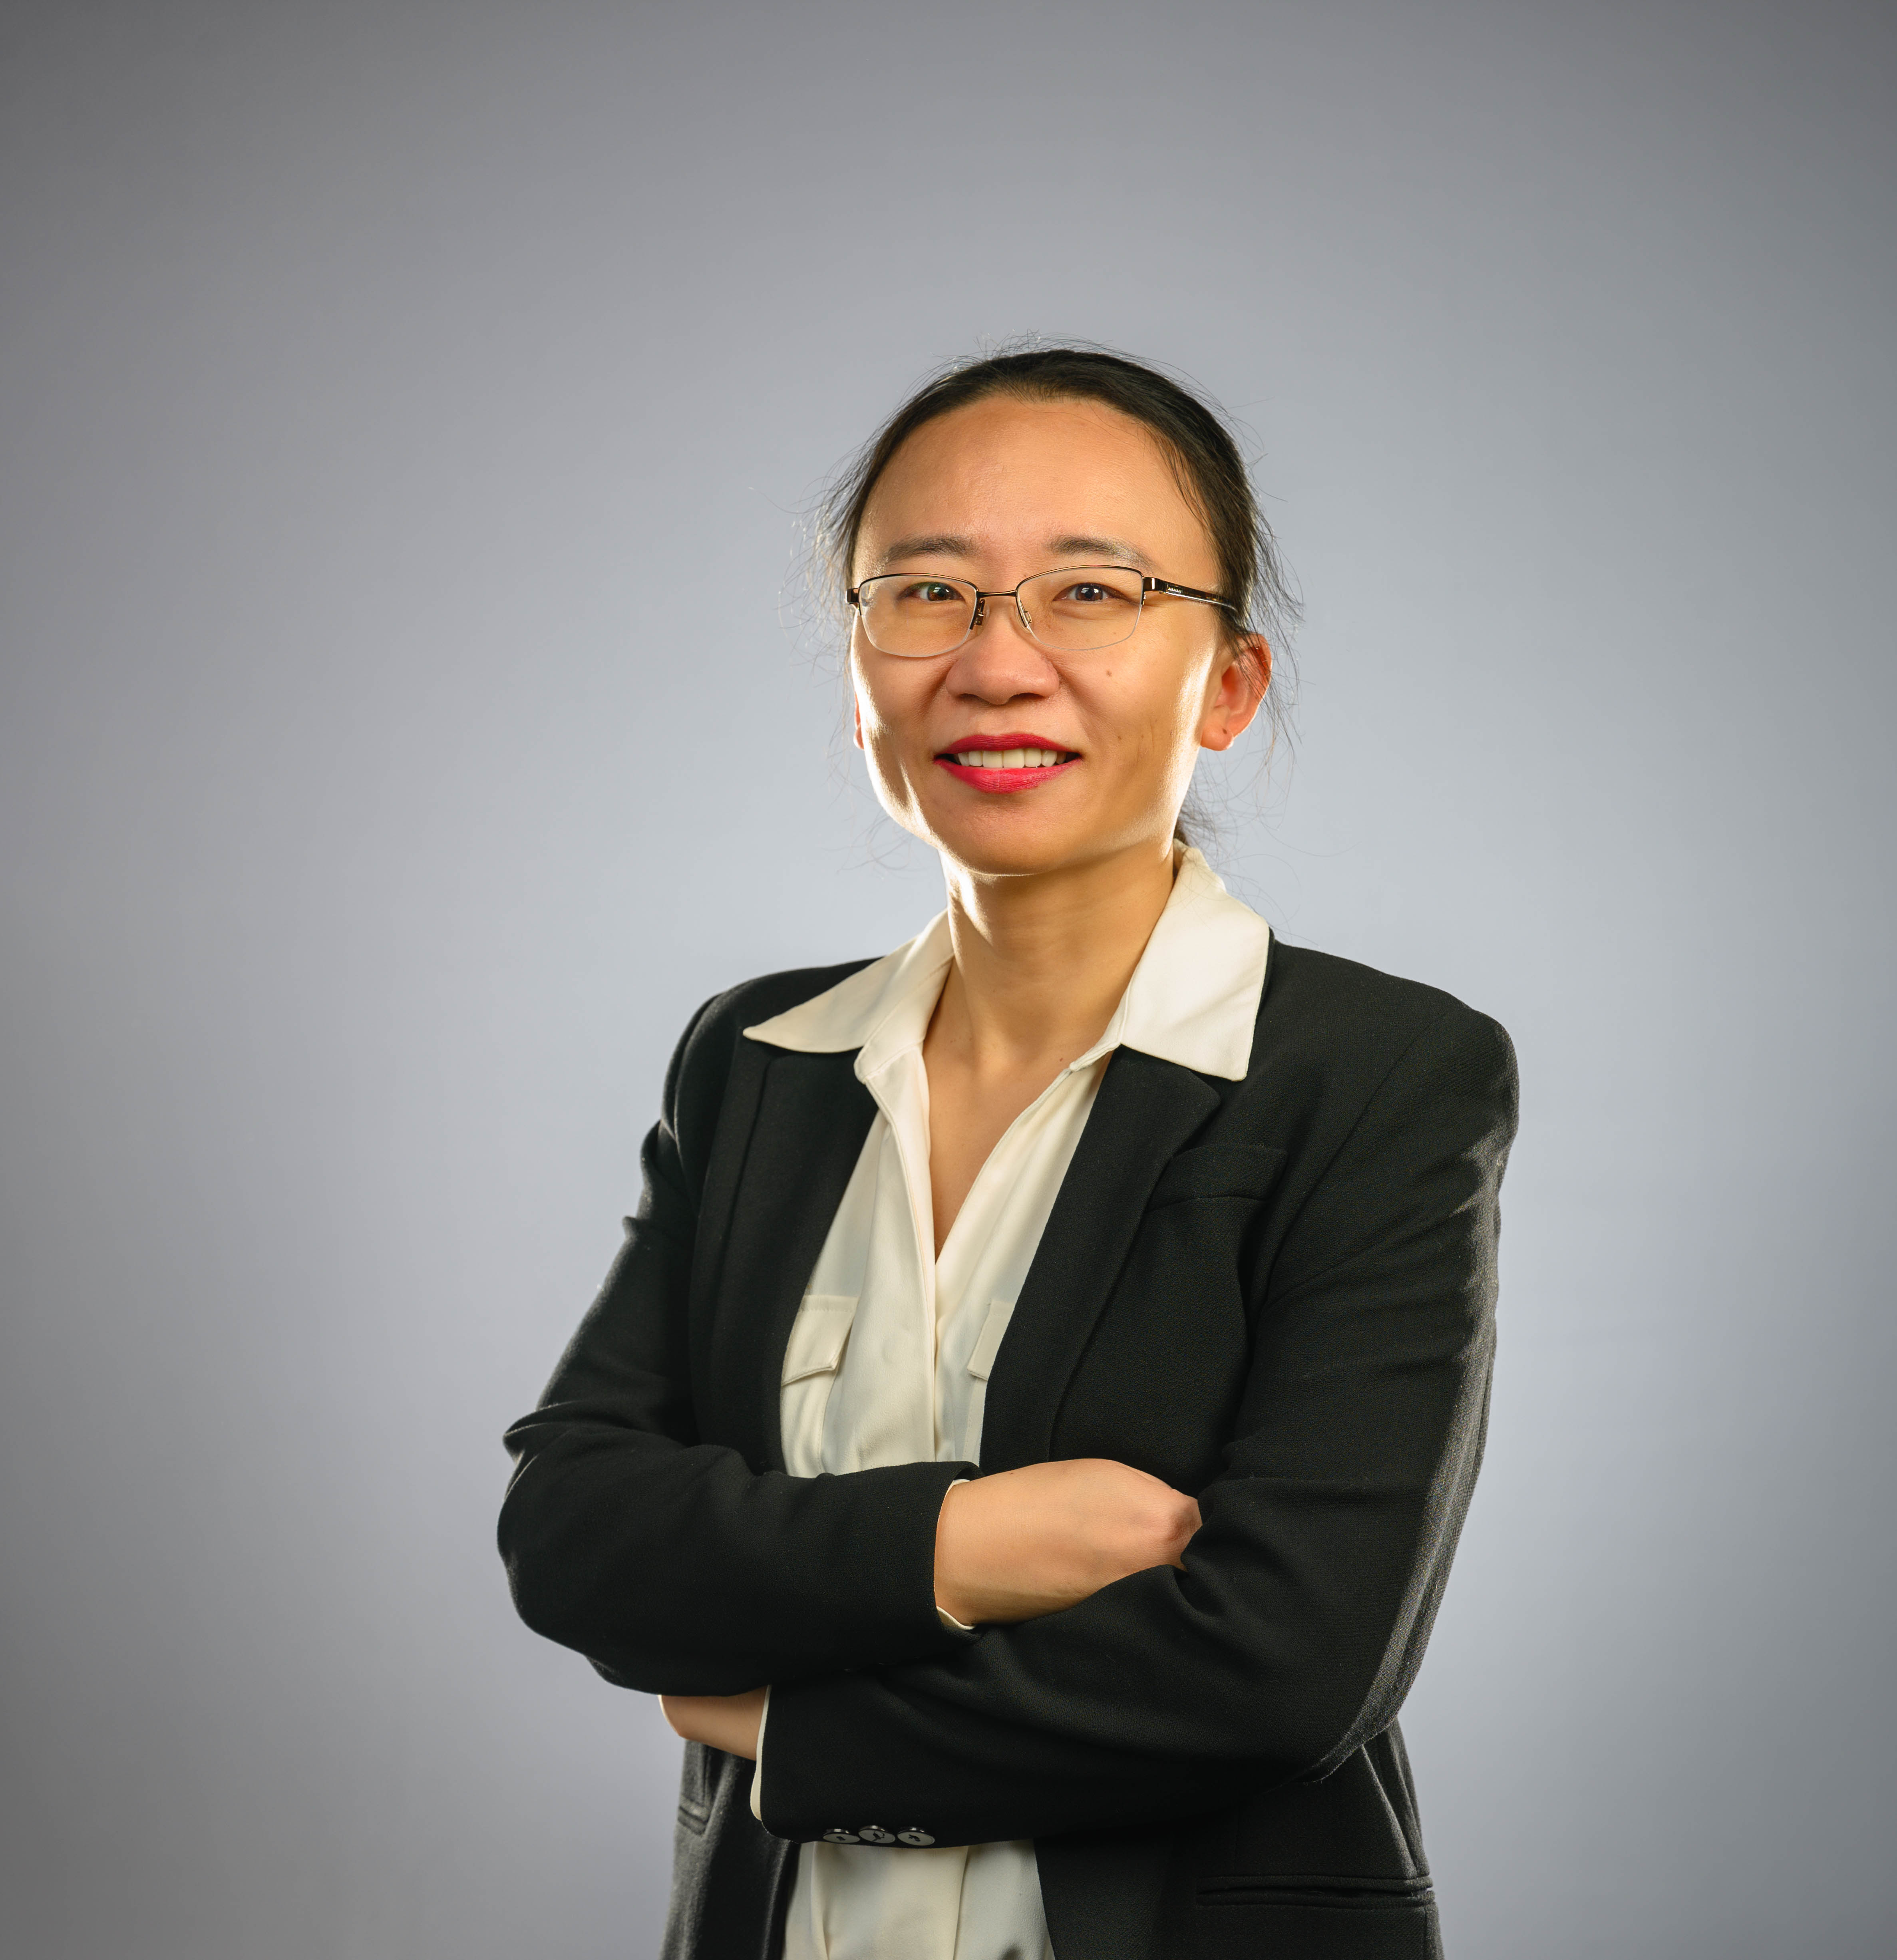 """Jennifer Zhang, a UTA professor in the College of Business' Department of Information Systems and Operations Management"""" _languageinserted=""""true"""